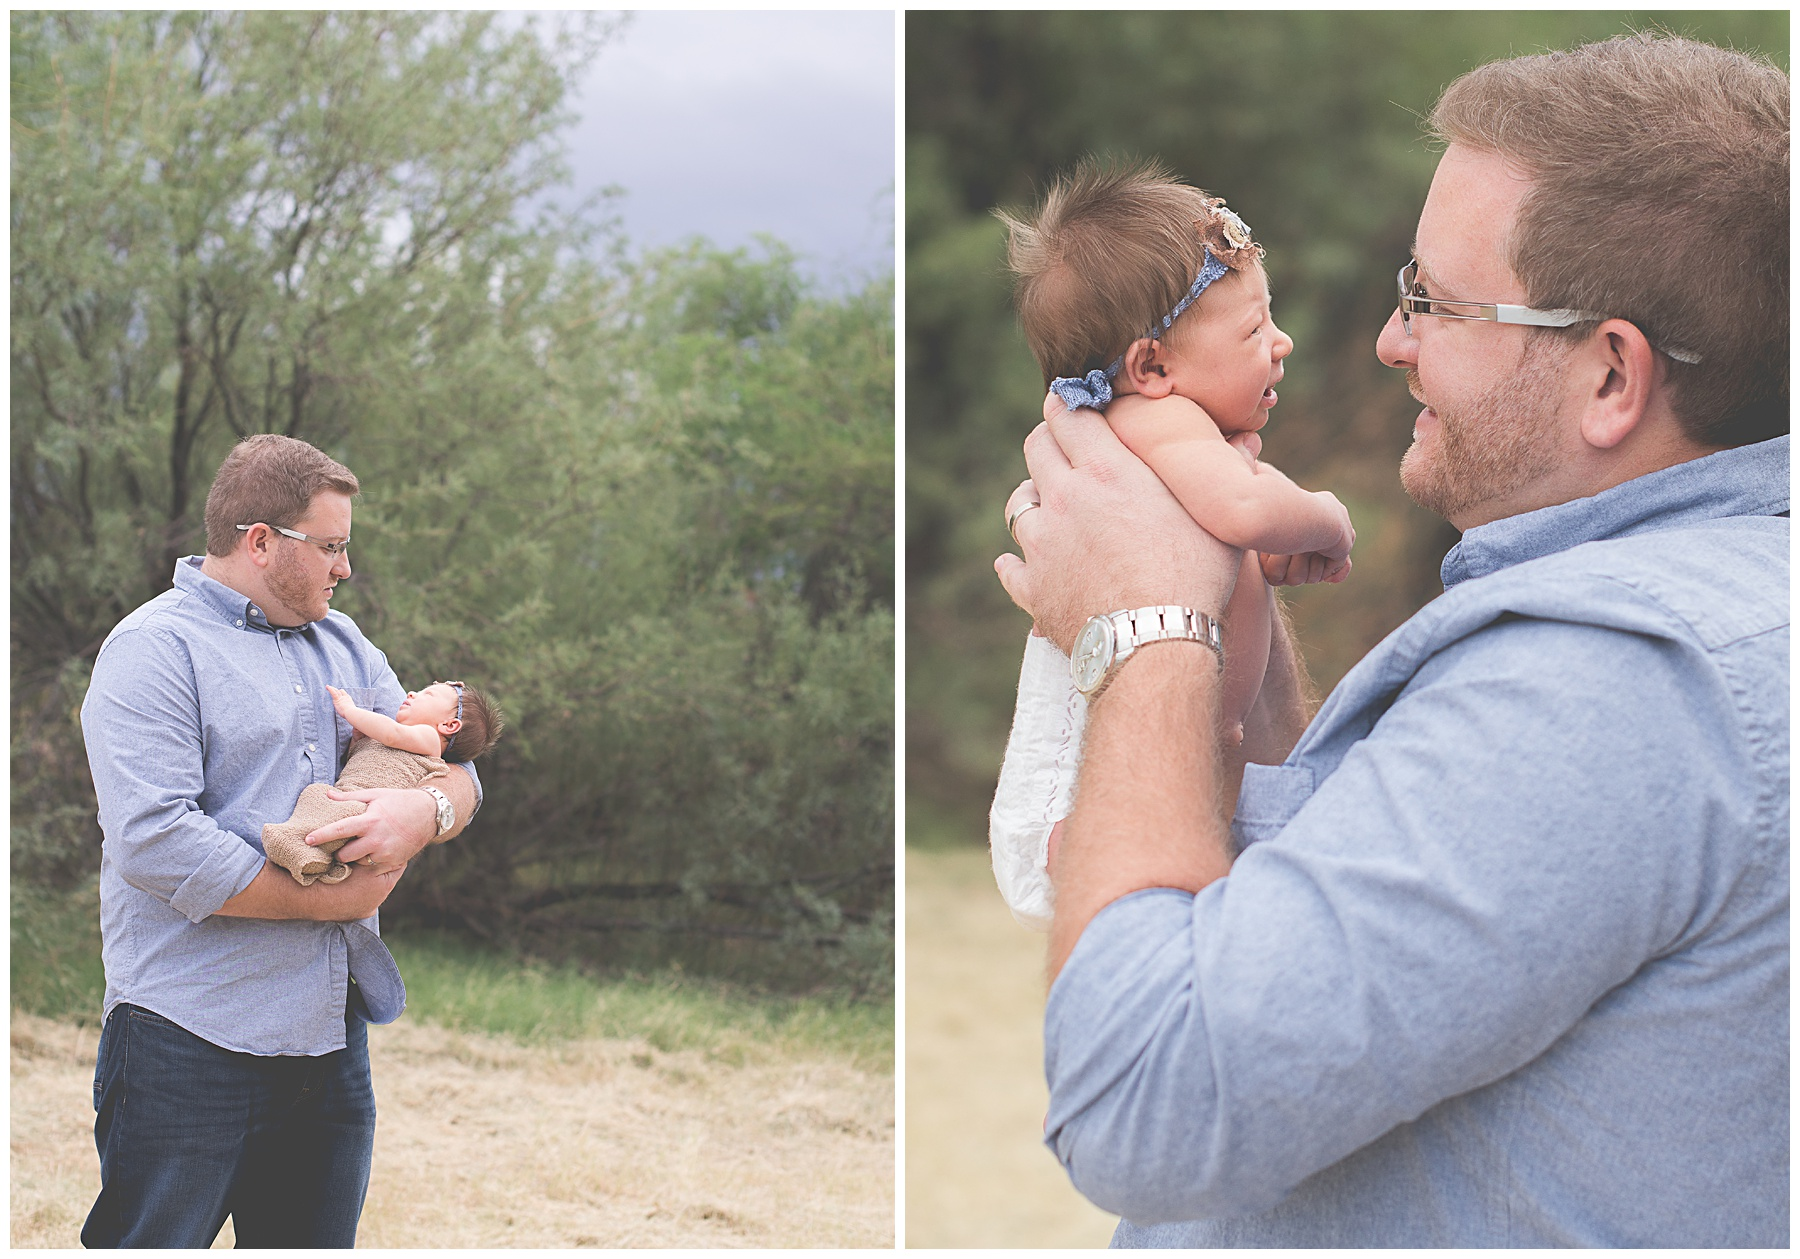 Phoenix-Outdoor-Lifestyle-Newborn-session-Sweetlife-Photography_0011.jpg